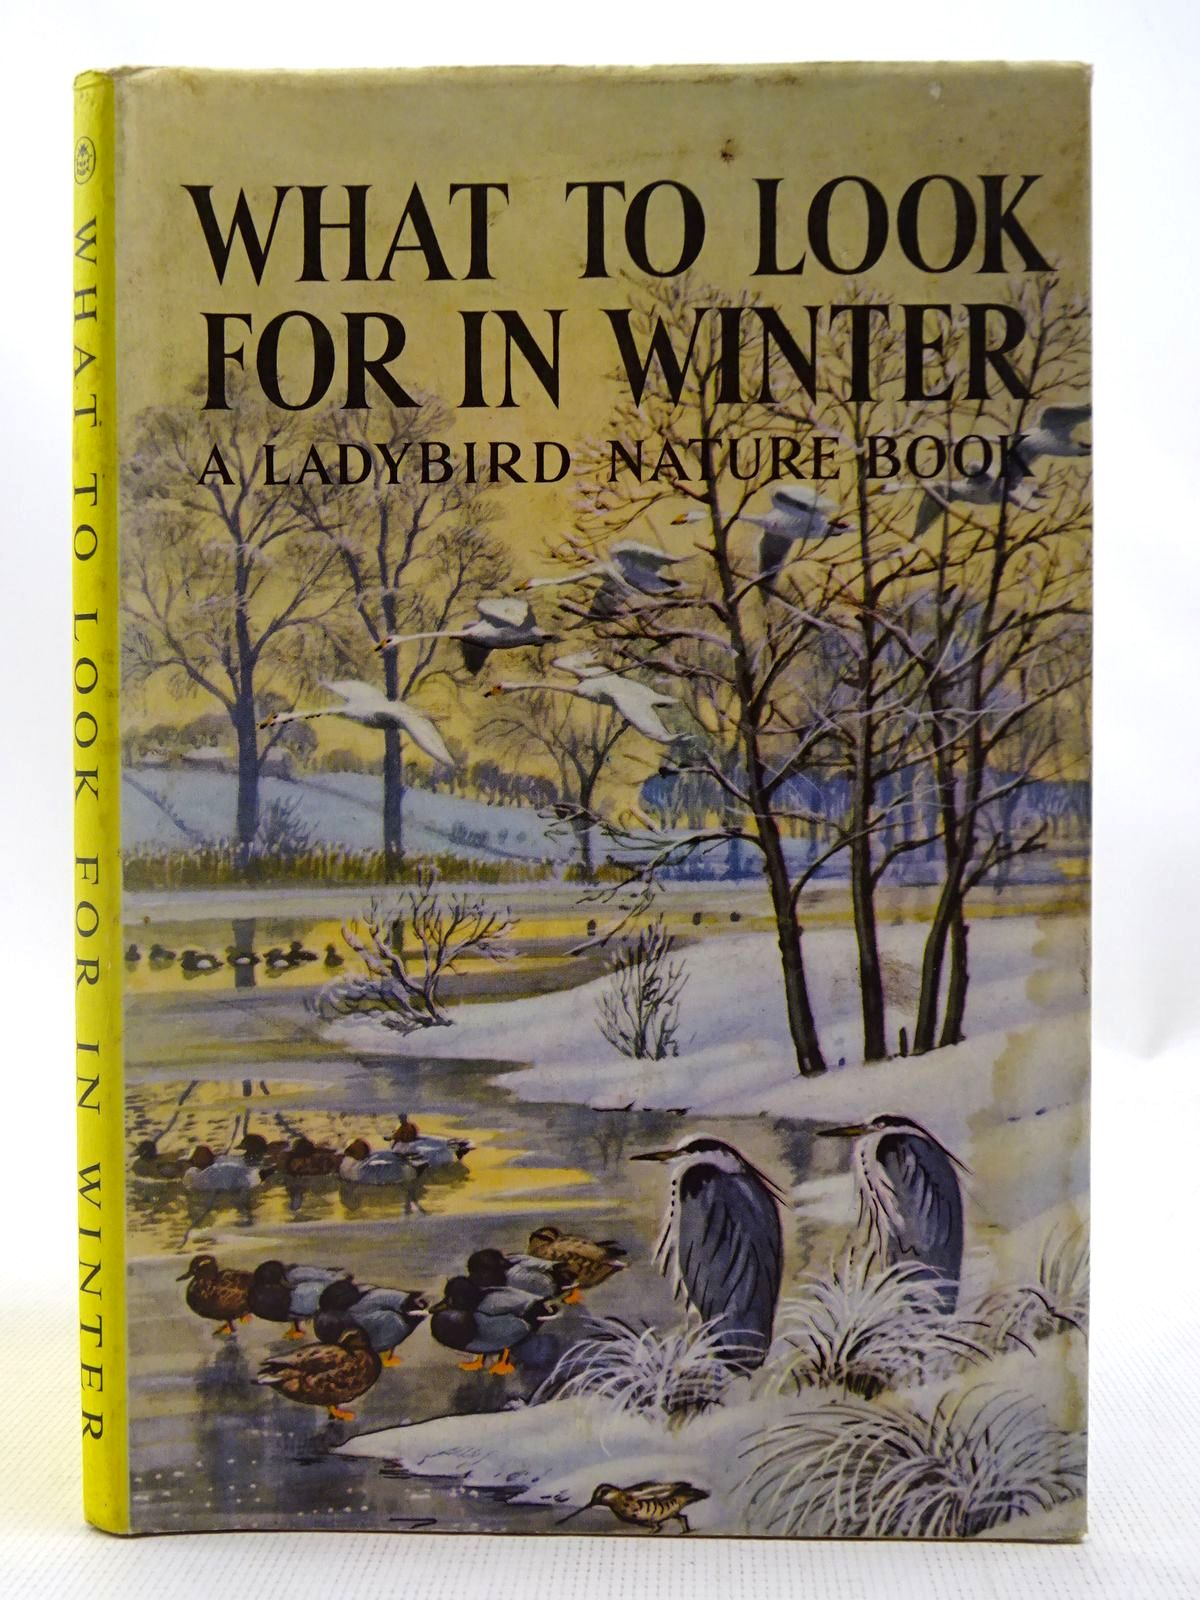 Photo of WHAT TO LOOK FOR IN WINTER written by Watson, E.L. Grant illustrated by Tunnicliffe, C.F. published by Wills & Hepworth Ltd. (STOCK CODE: 2127479)  for sale by Stella & Rose's Books